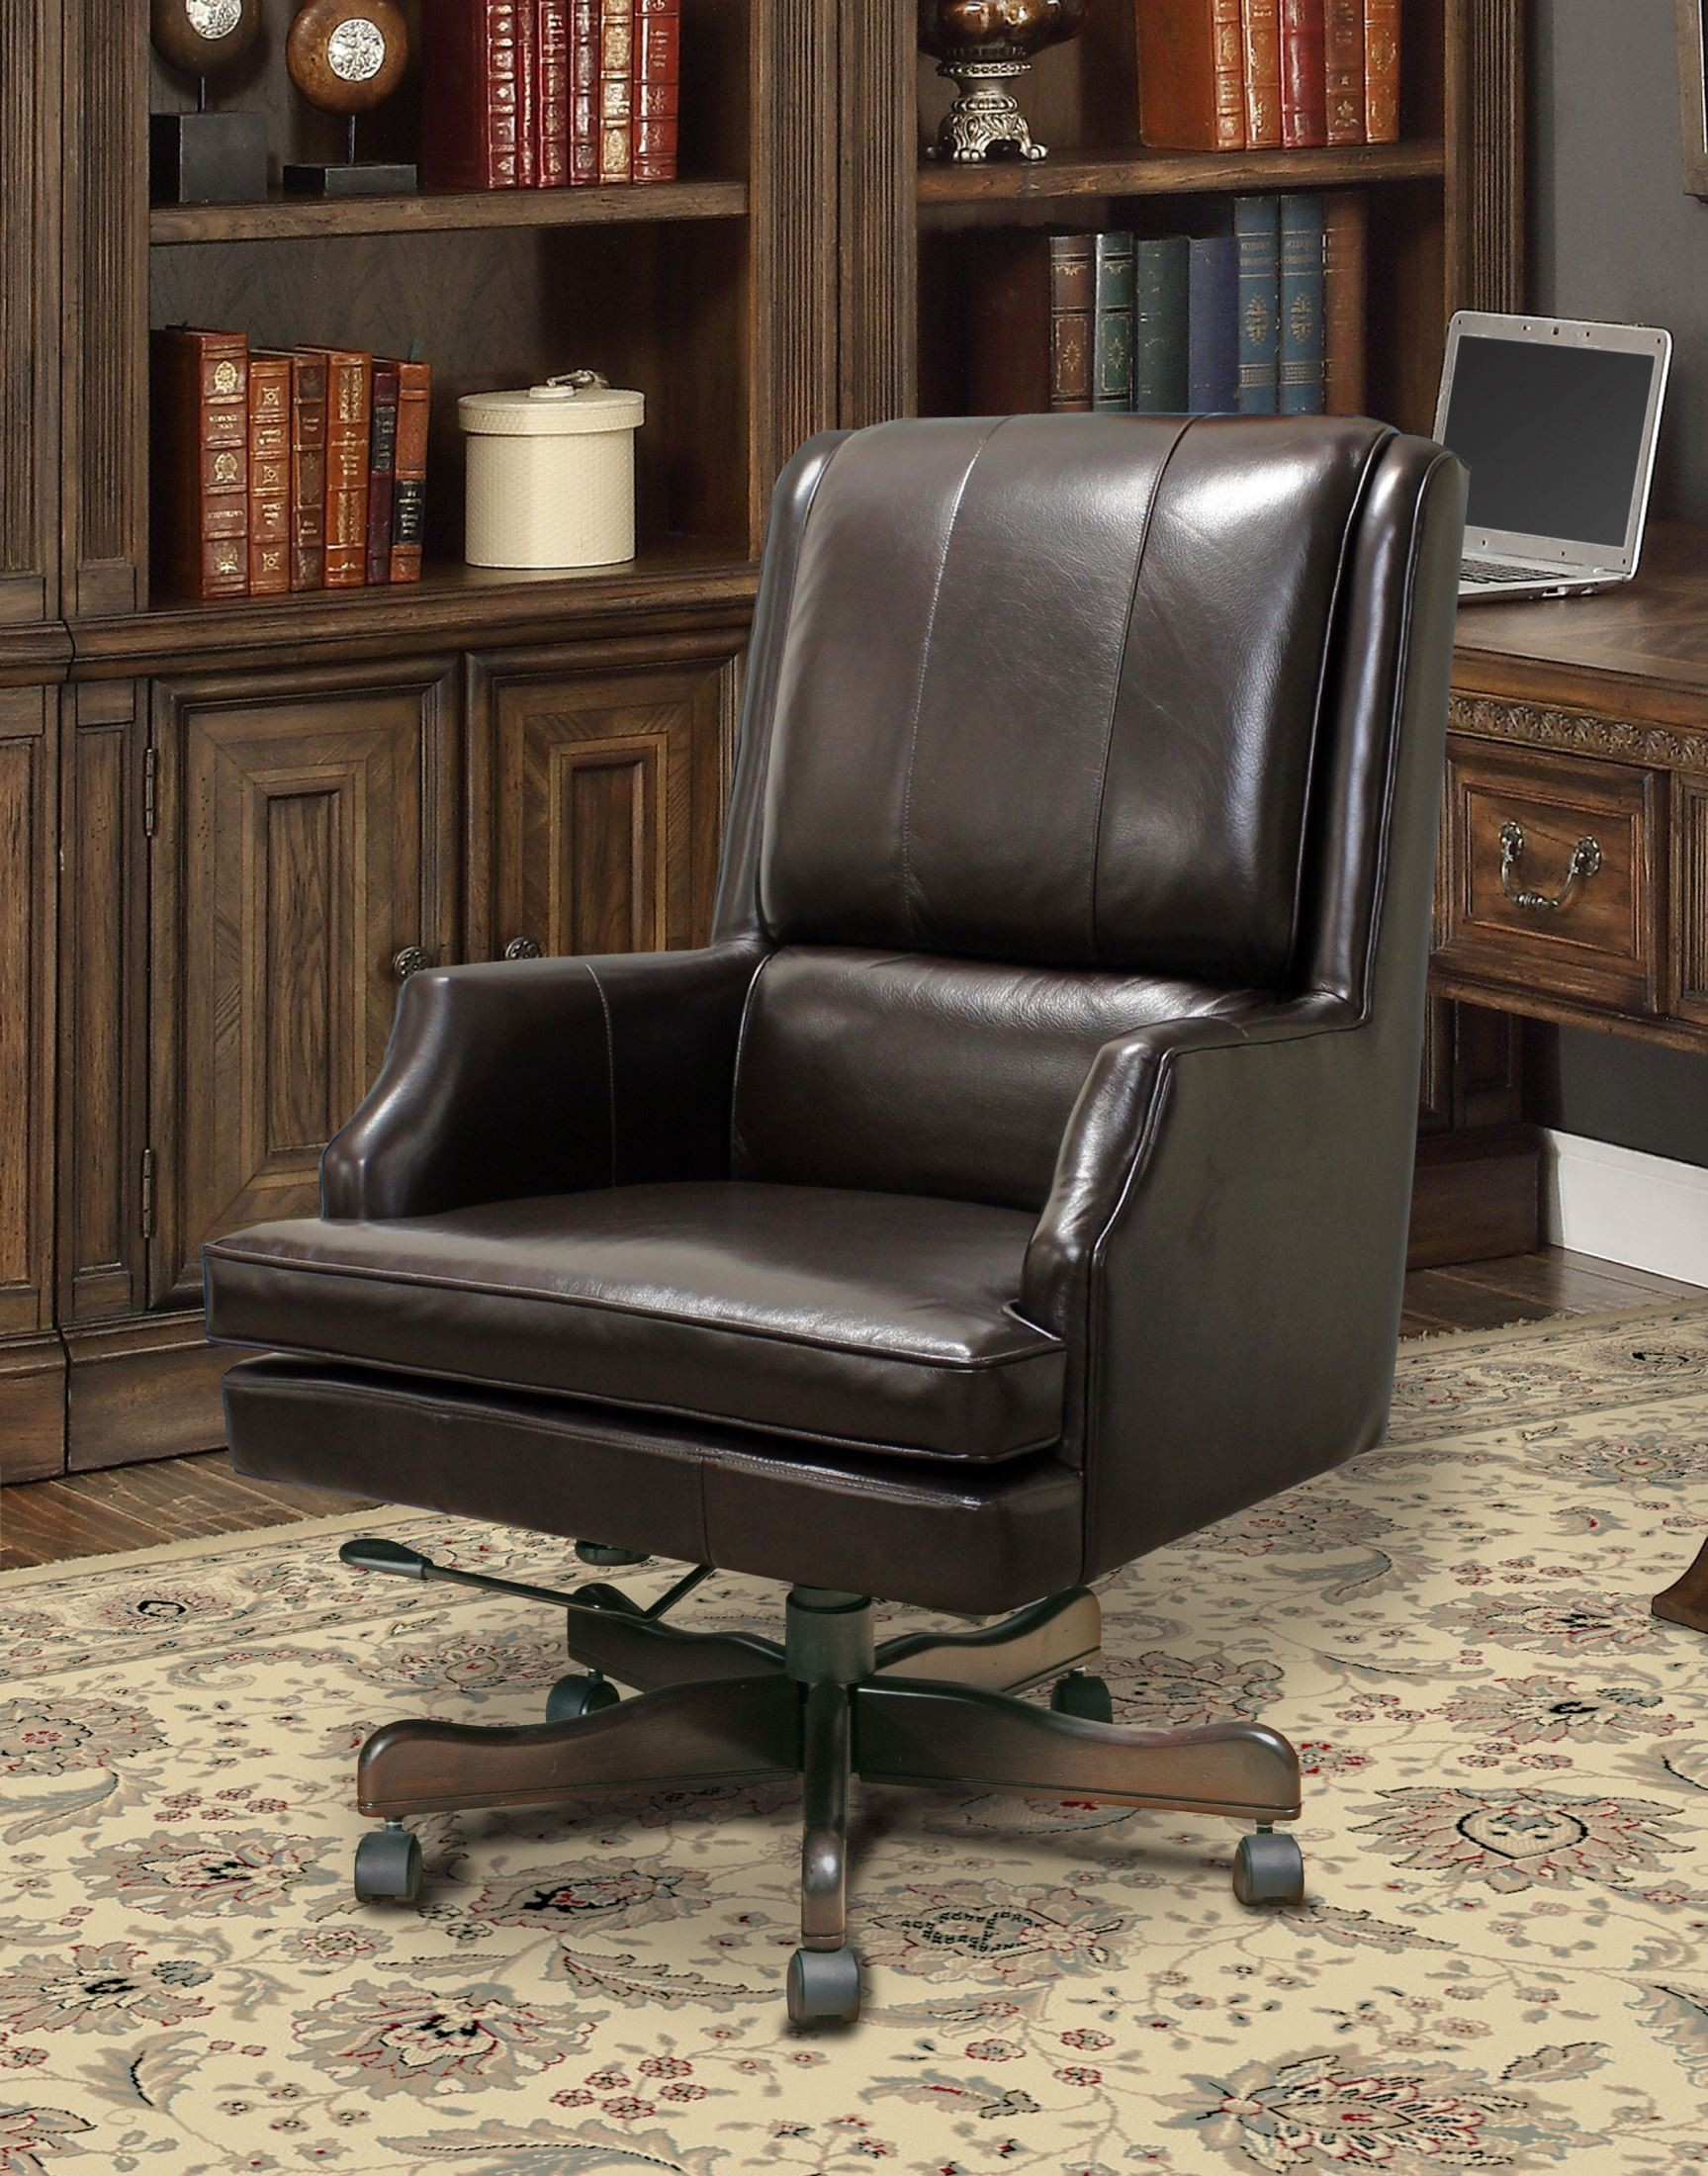 Brown Leather Desk Chair Sable Brown Leather Desk Chair From Parker Living